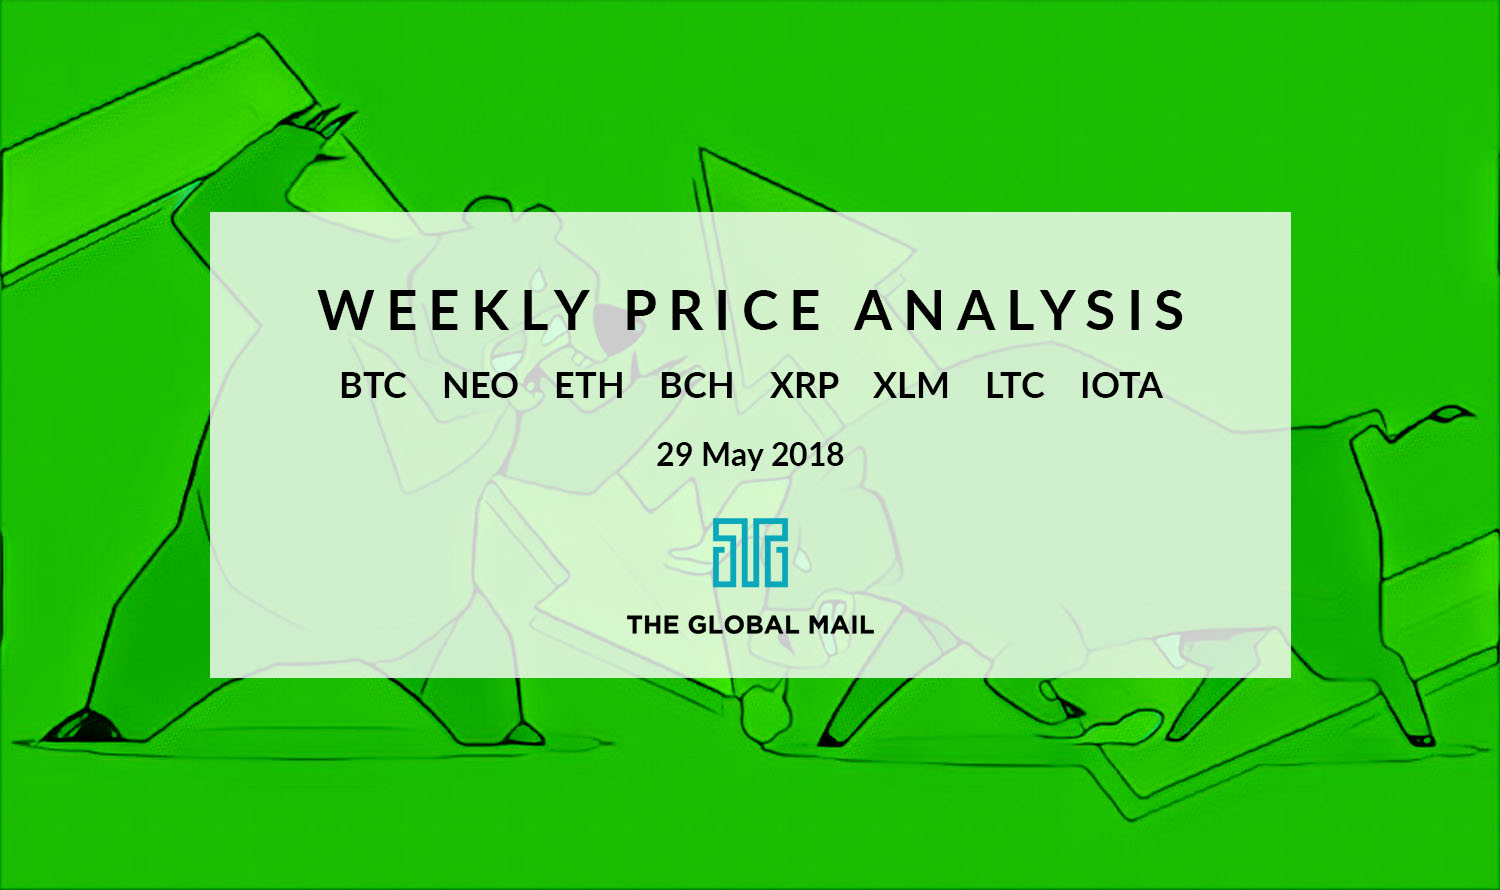 Weekly Price Analysis